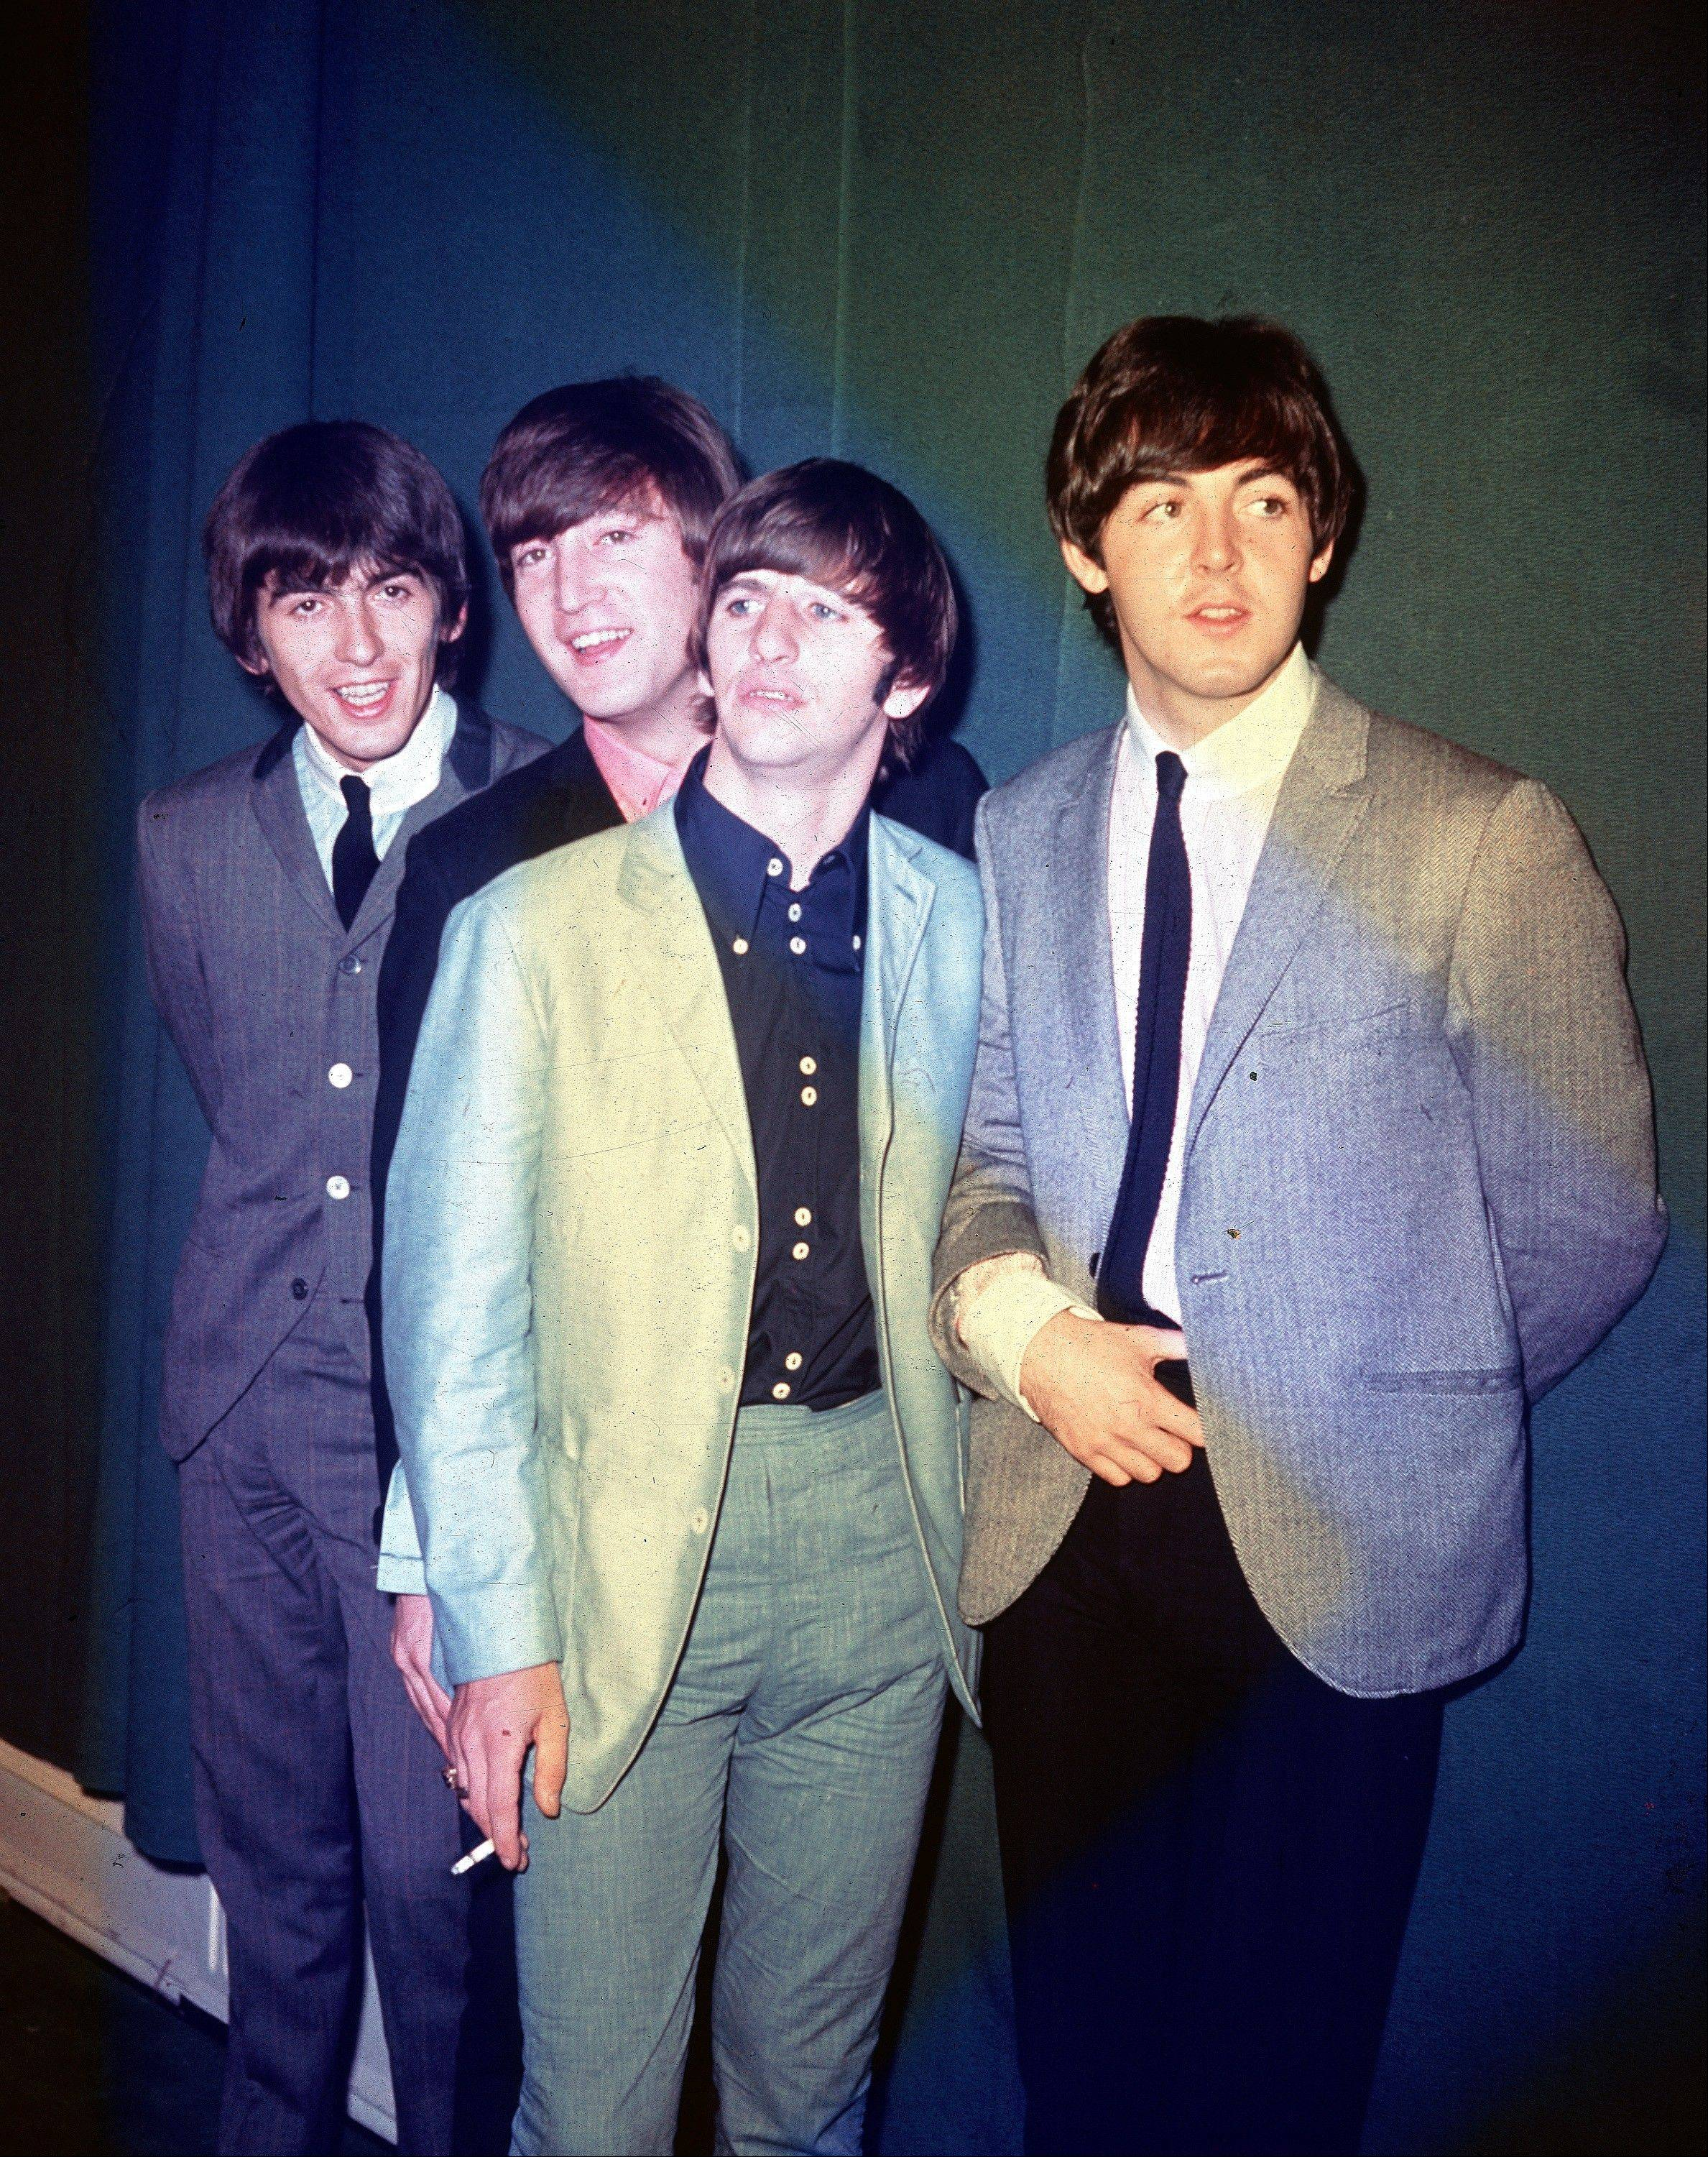 The Beatles -- George Harrison, left, John Lennon, Ringo Starr and Paul McCartney -- took America by storm in 1964.